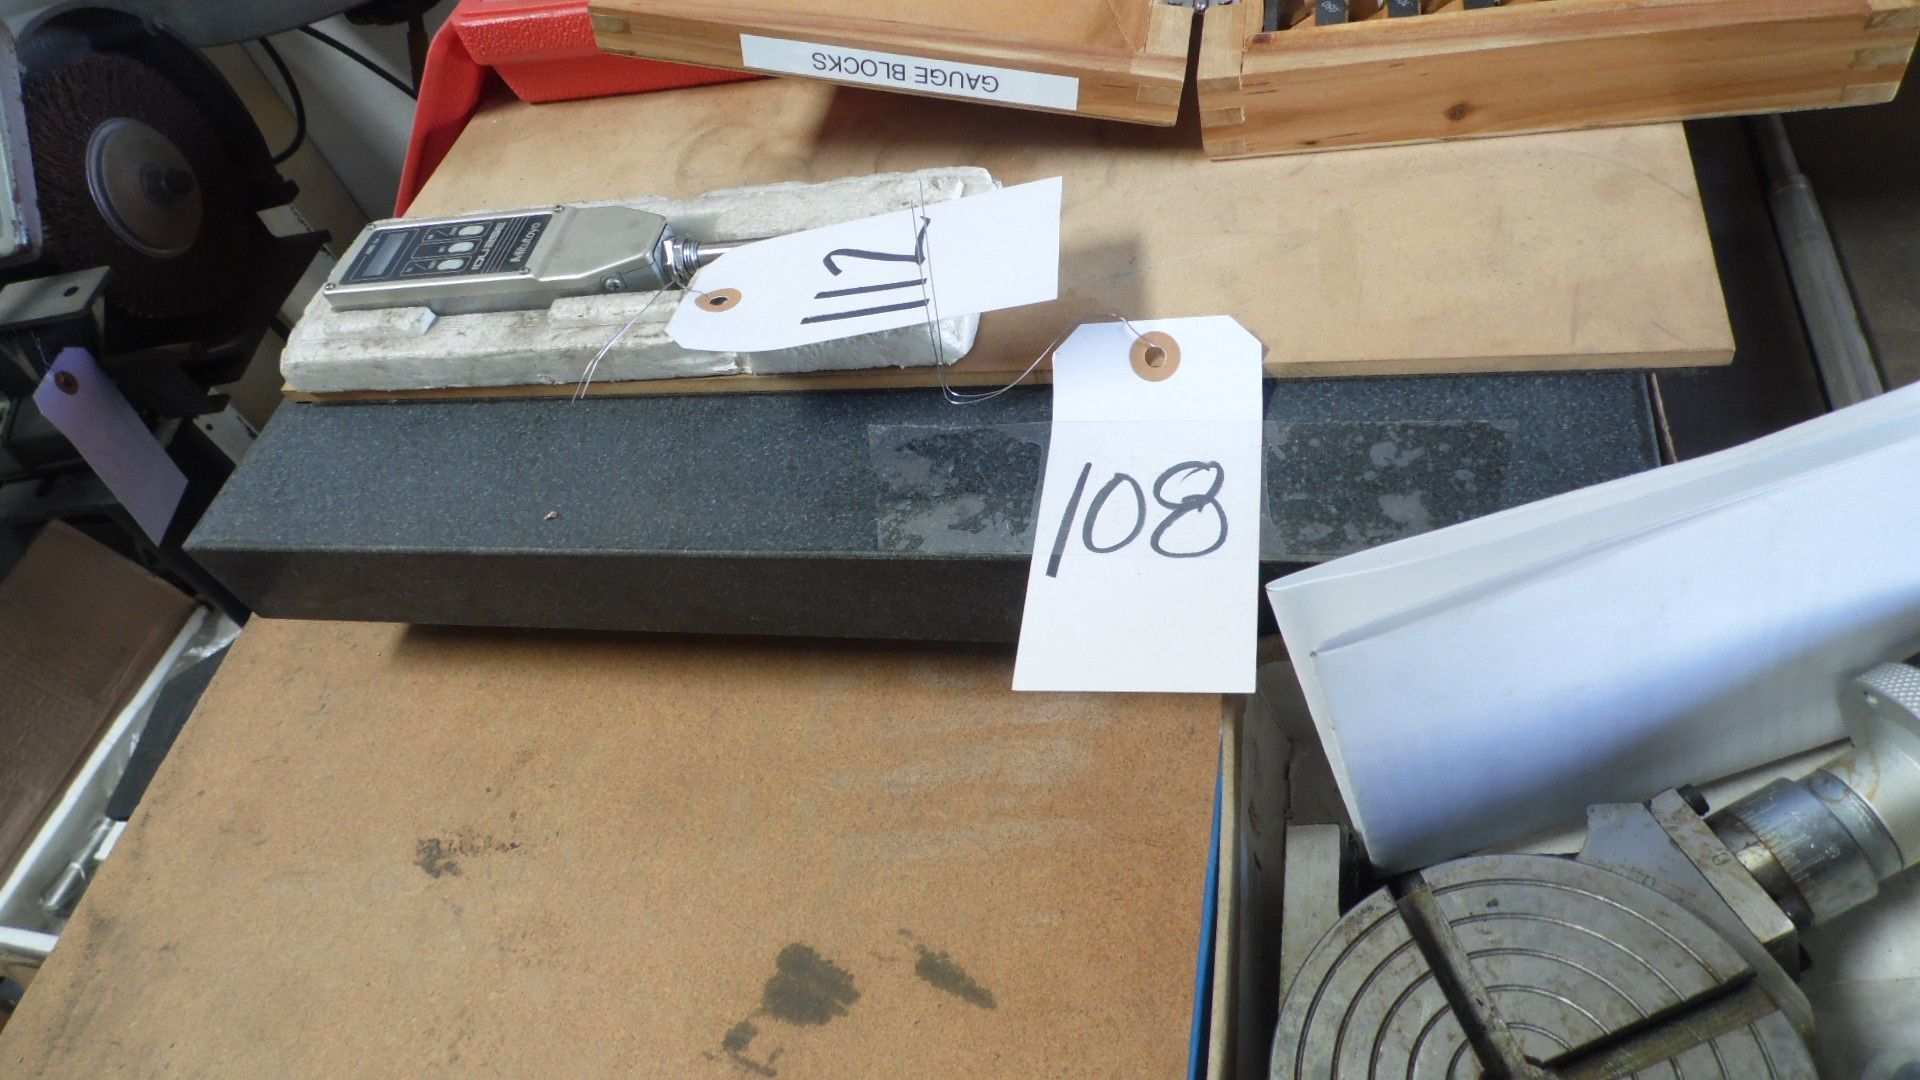 Lot 108 - 18 X 24 SURFACE PLATE